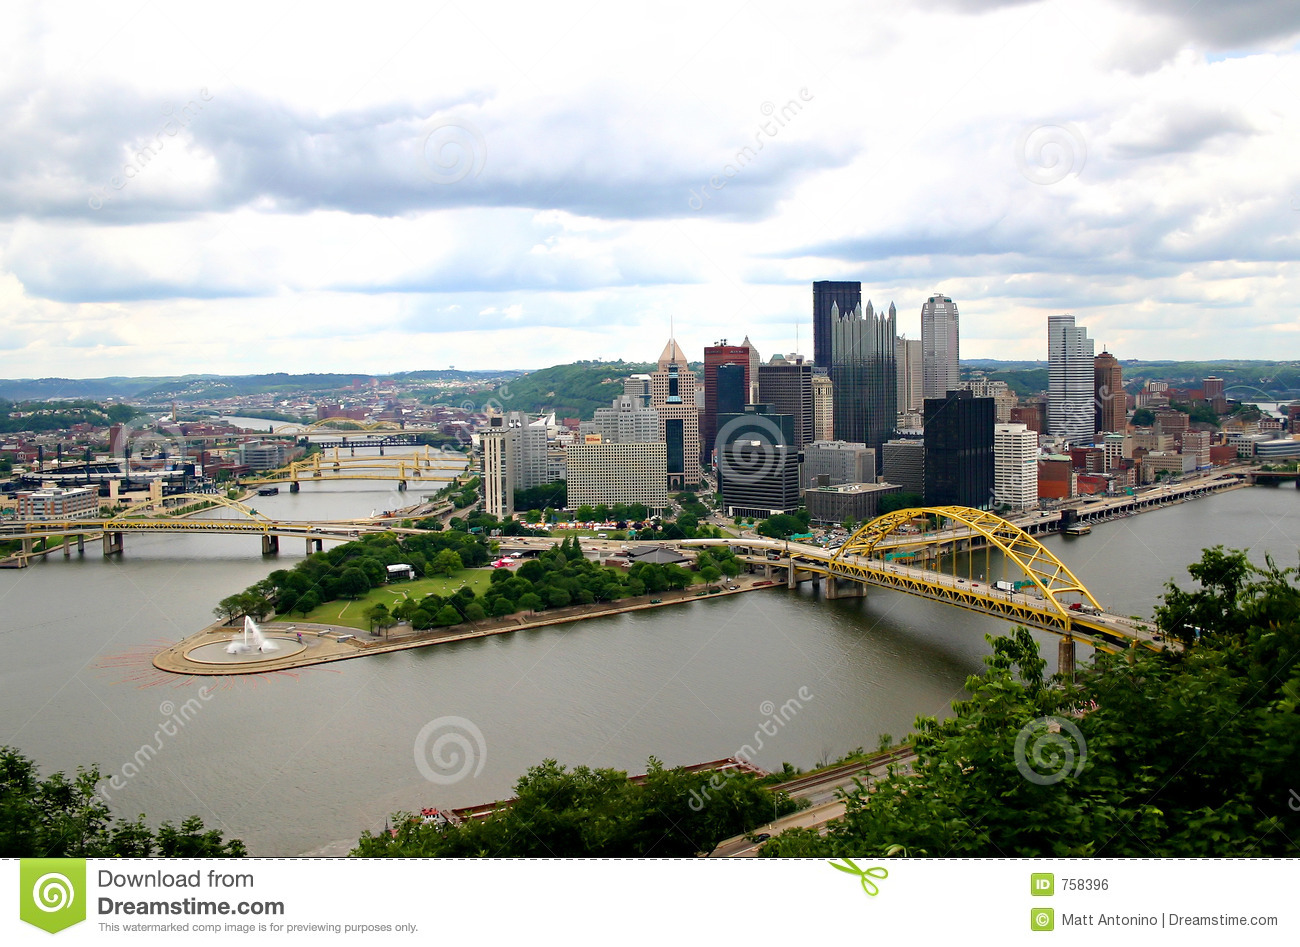 9 Ways to Meet Singles in Pittsburgh PA (Dating Guide)